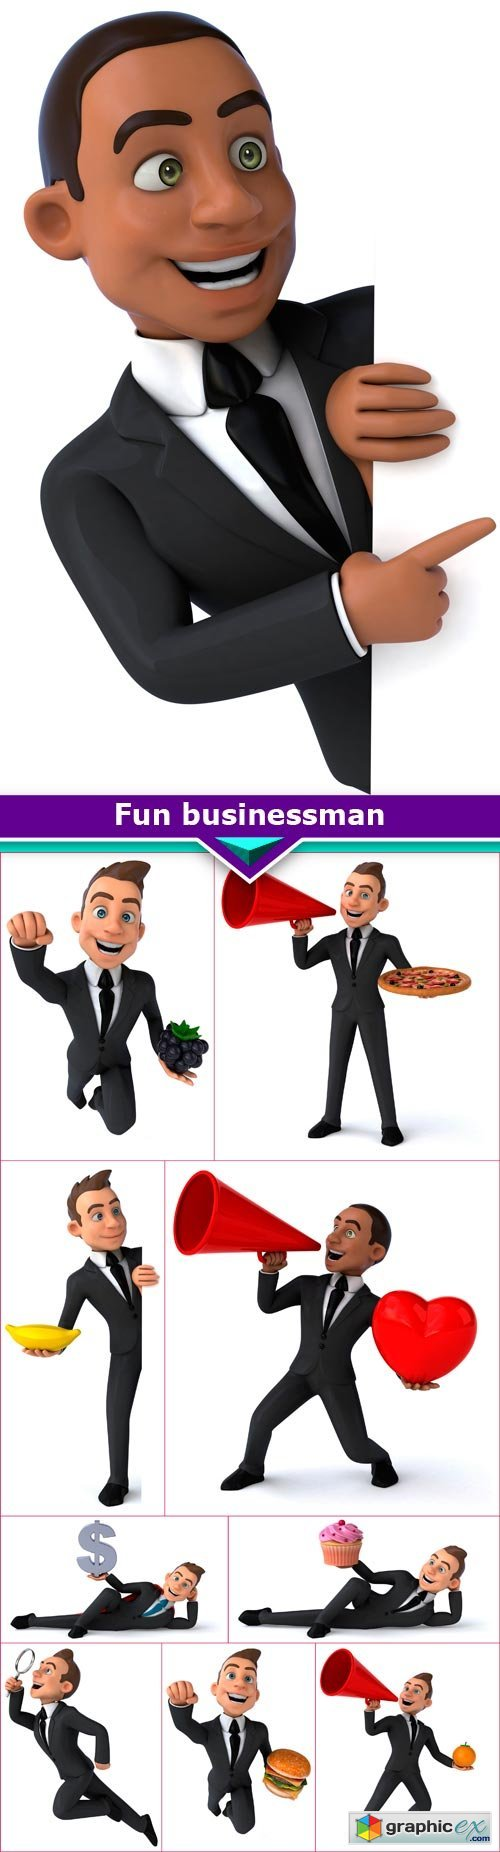 Fun businessman 10x JPEG